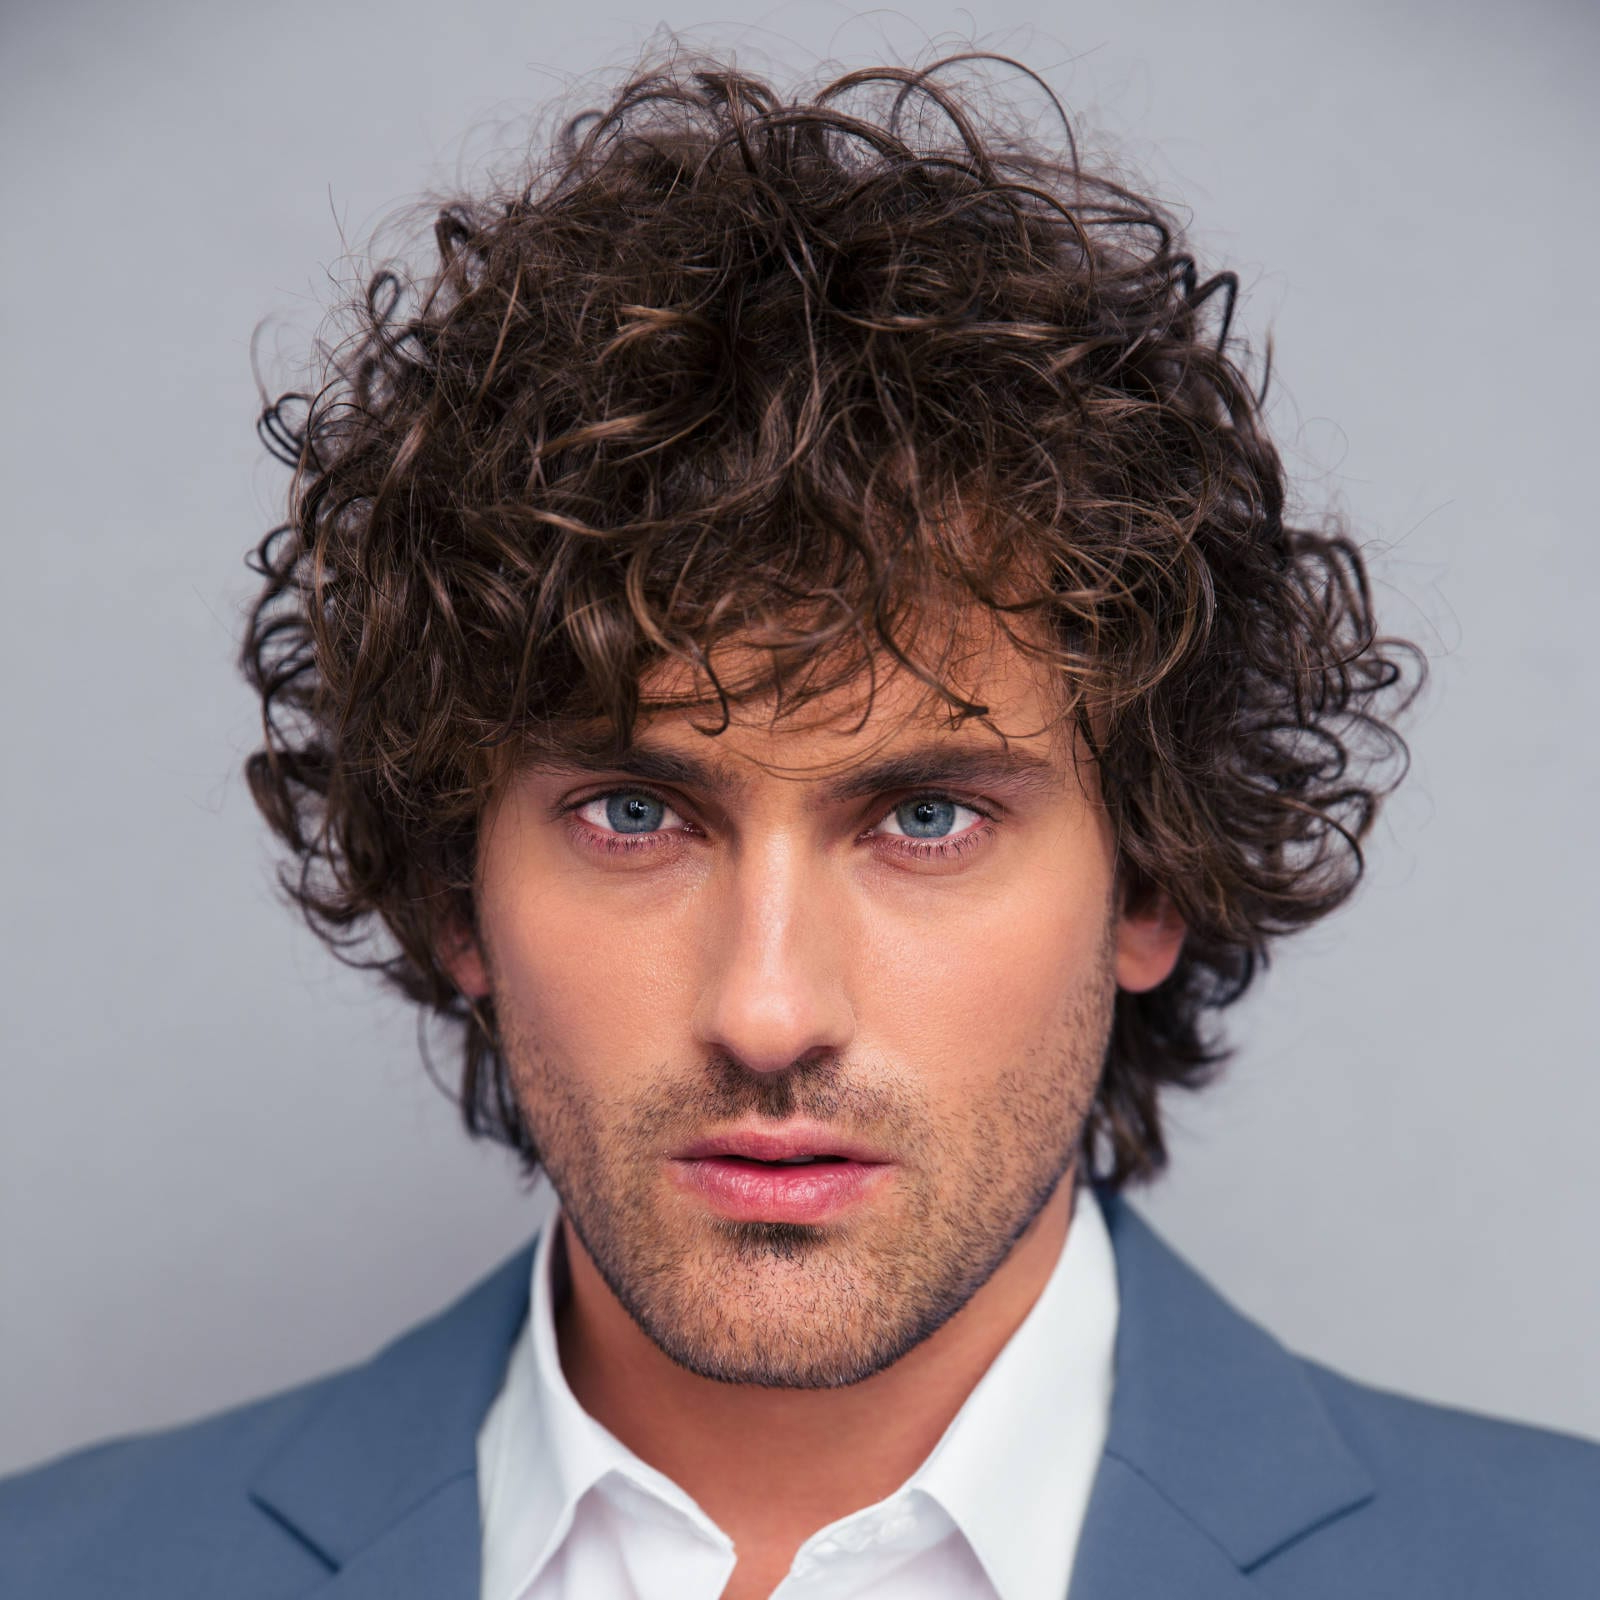 2018 Medium Hairstyles For Very Curly Hair In 40 Modern Men's Hairstyles For Curly Hair (That Will Change Your Look) (View 1 of 20)